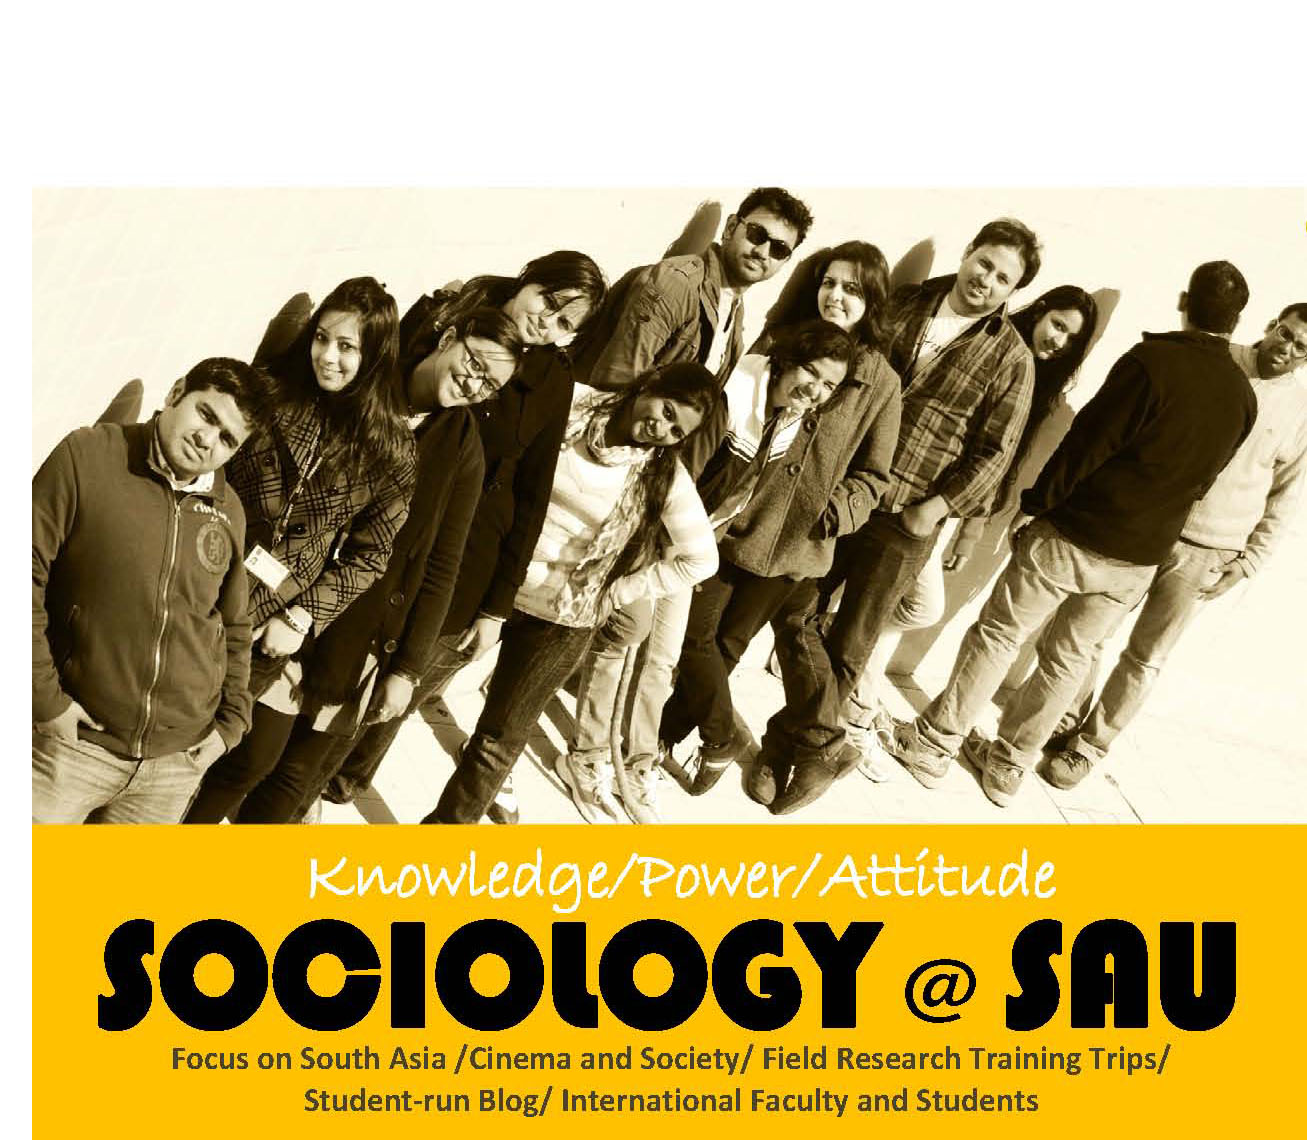 sociology and mon wed Language and social interaction sociology 142 winter 2015 mon-wed - 5:00-6:45 pm porter 144 instructor: wendy martyna, phd - continuing lecturer in sociology.